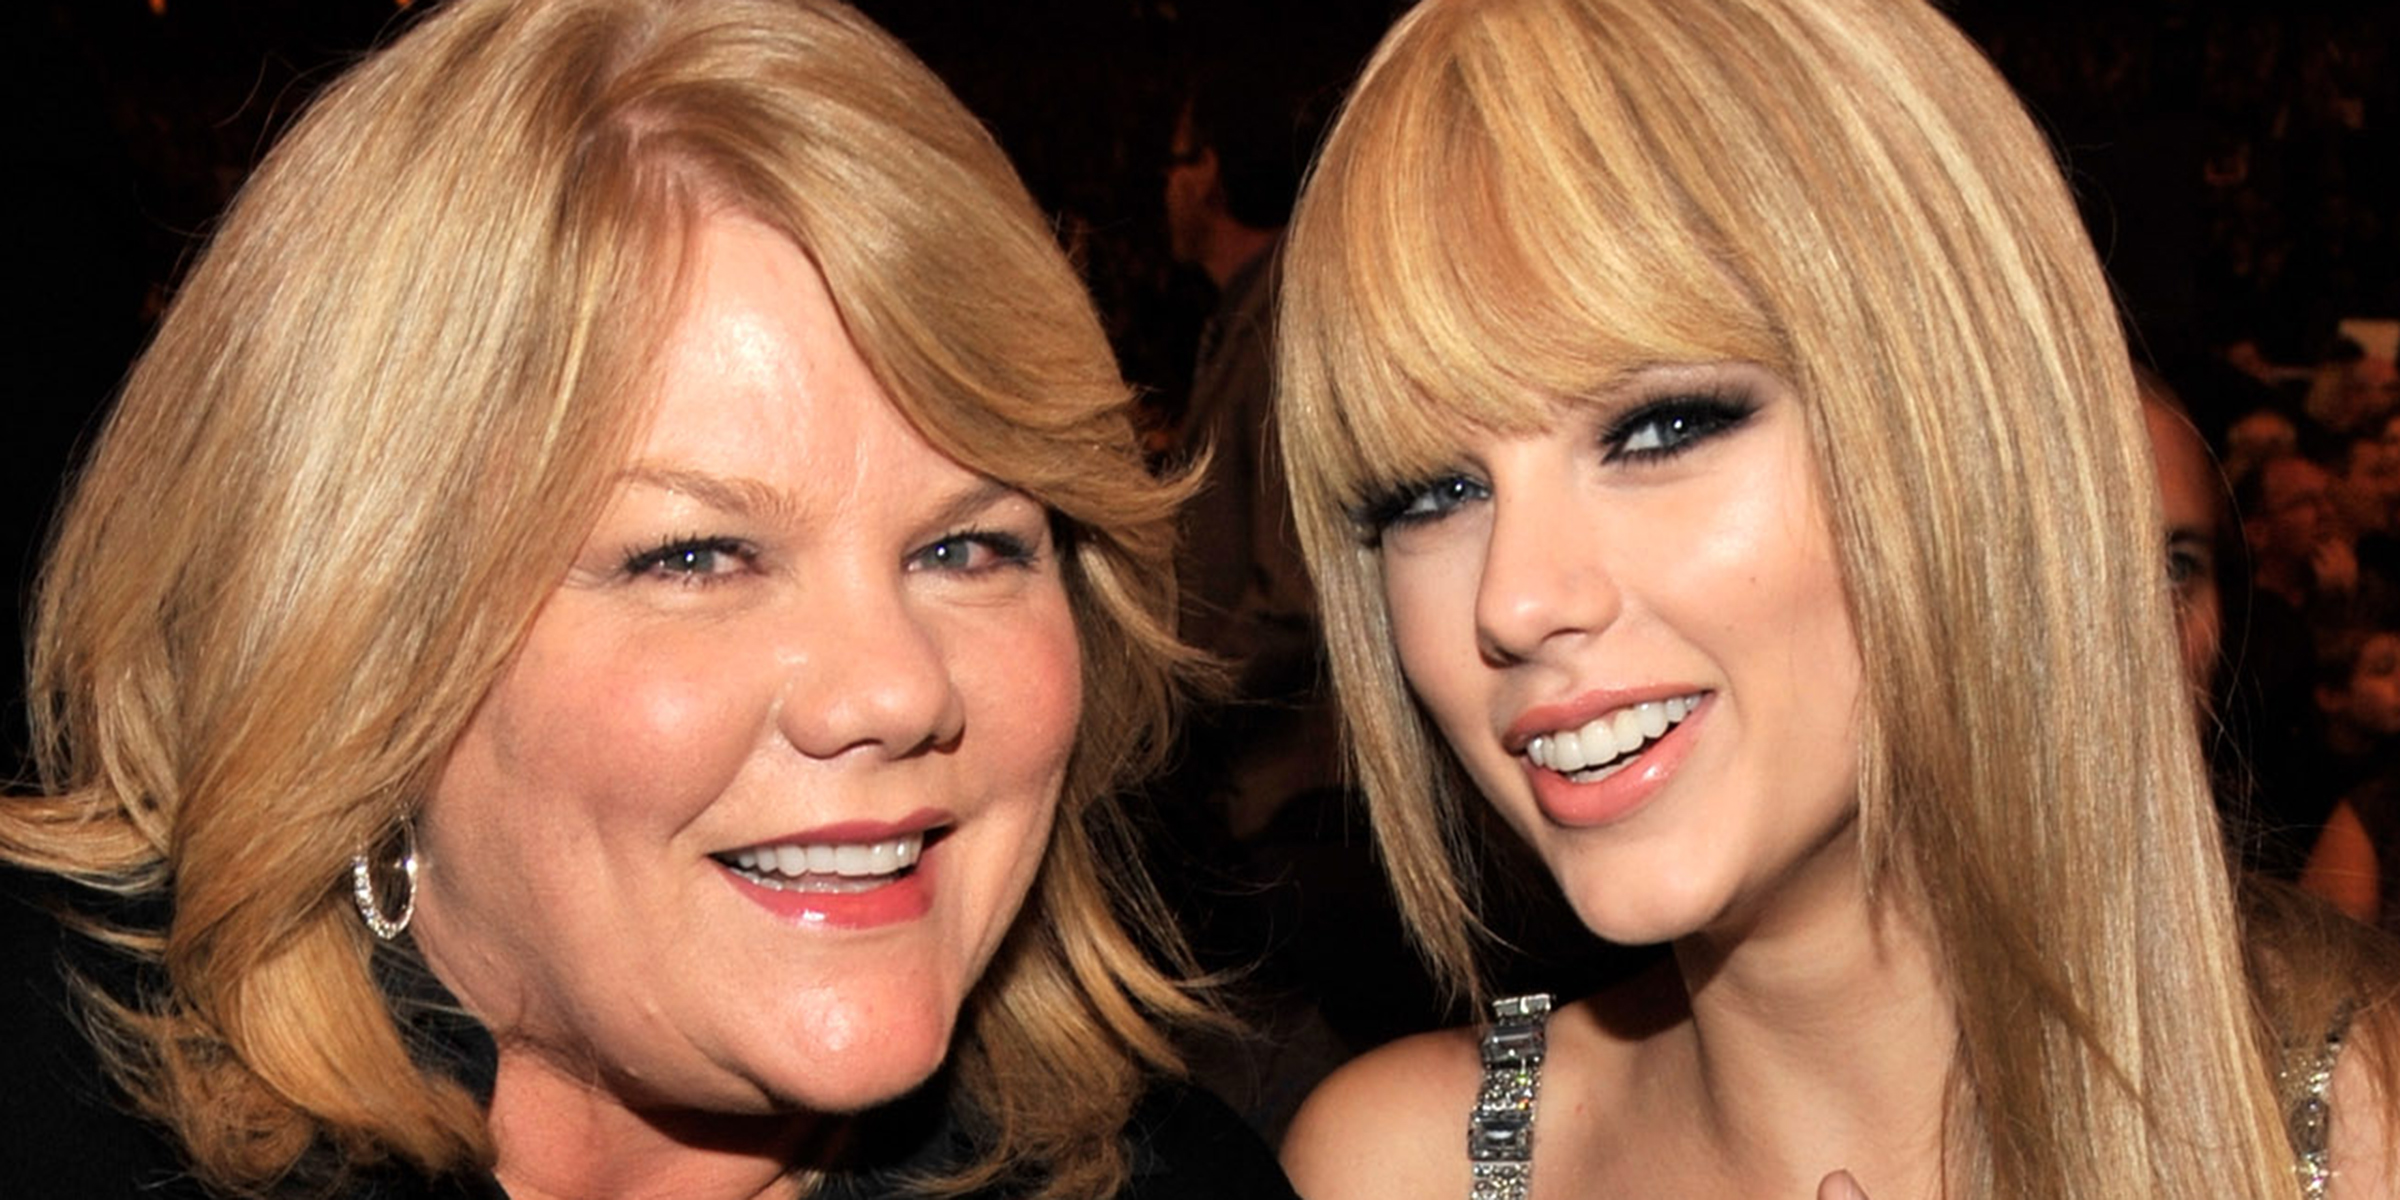 Soon You Ll Get Better Taylor Swift Performs Song About Mom S Cancer